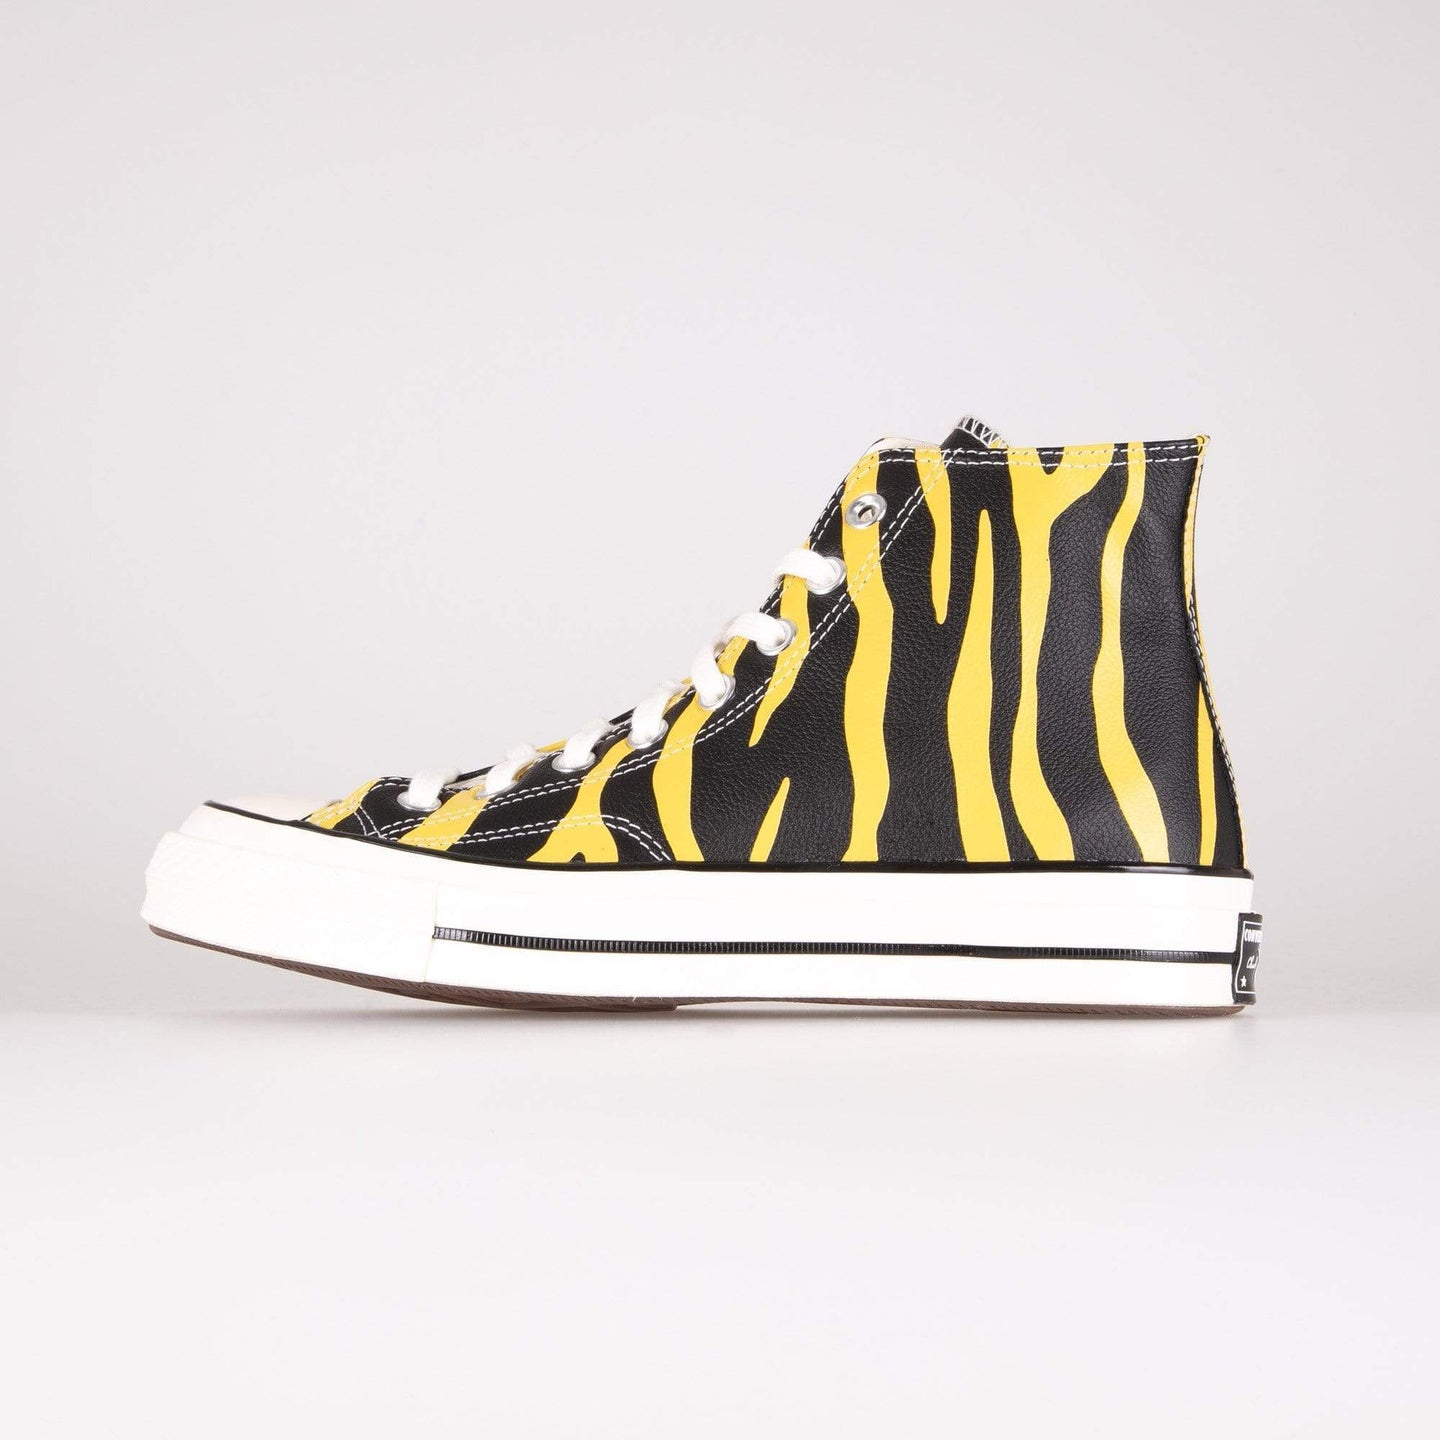 Converse Chuck 70 Hi Leather Archive Print - Vivid Sulfur / Black UK 7 165965C7 888757555956 Converse Trainers